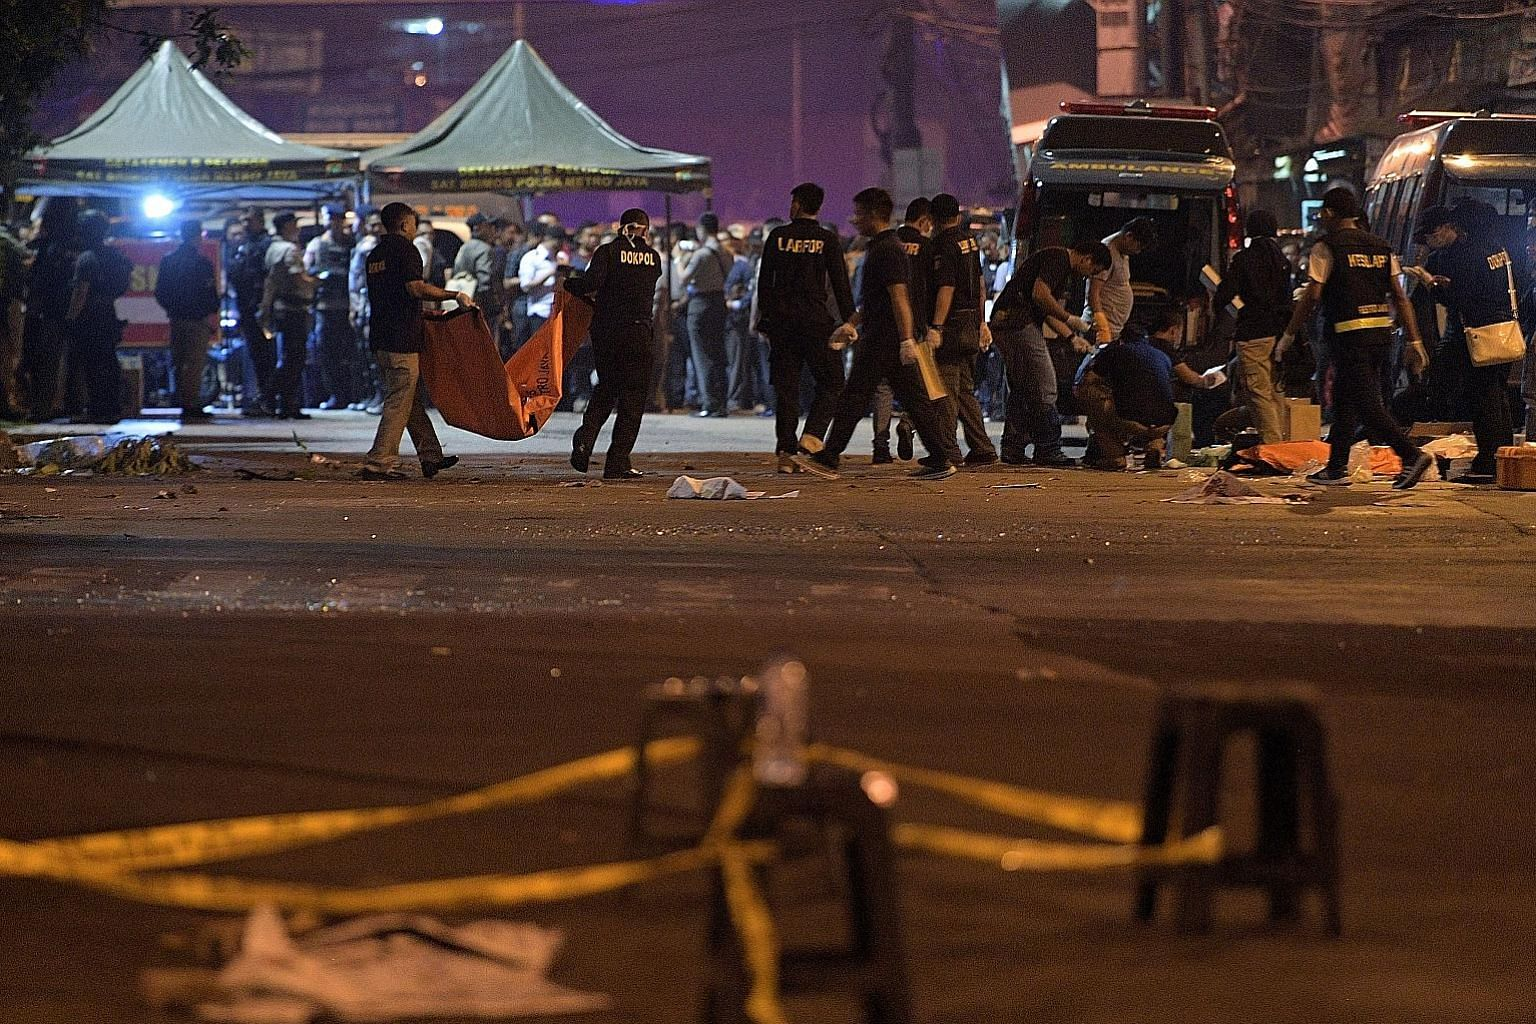 Police investigators at a bus station in Kampung Melayu, East Jakarta, on May 25, where two suicide bombers killed three policemen and injured more than 10 people.